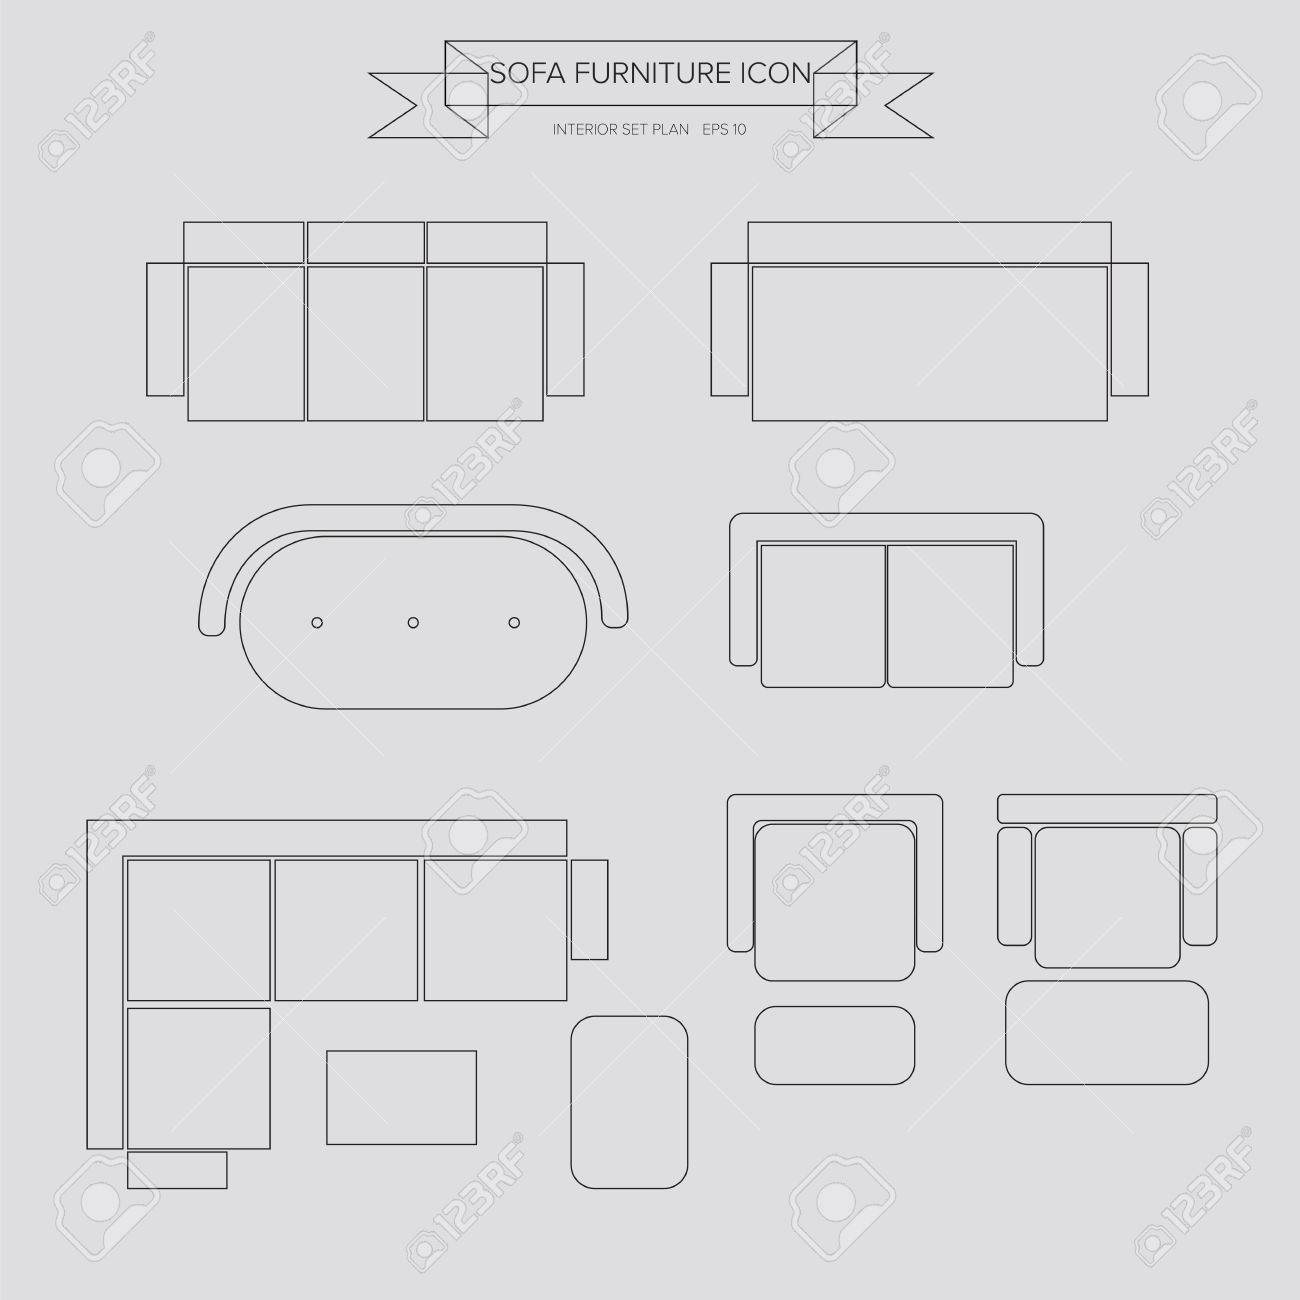 Sofa Furniture Outline Icon Top View For Interior Plan Royalty Free